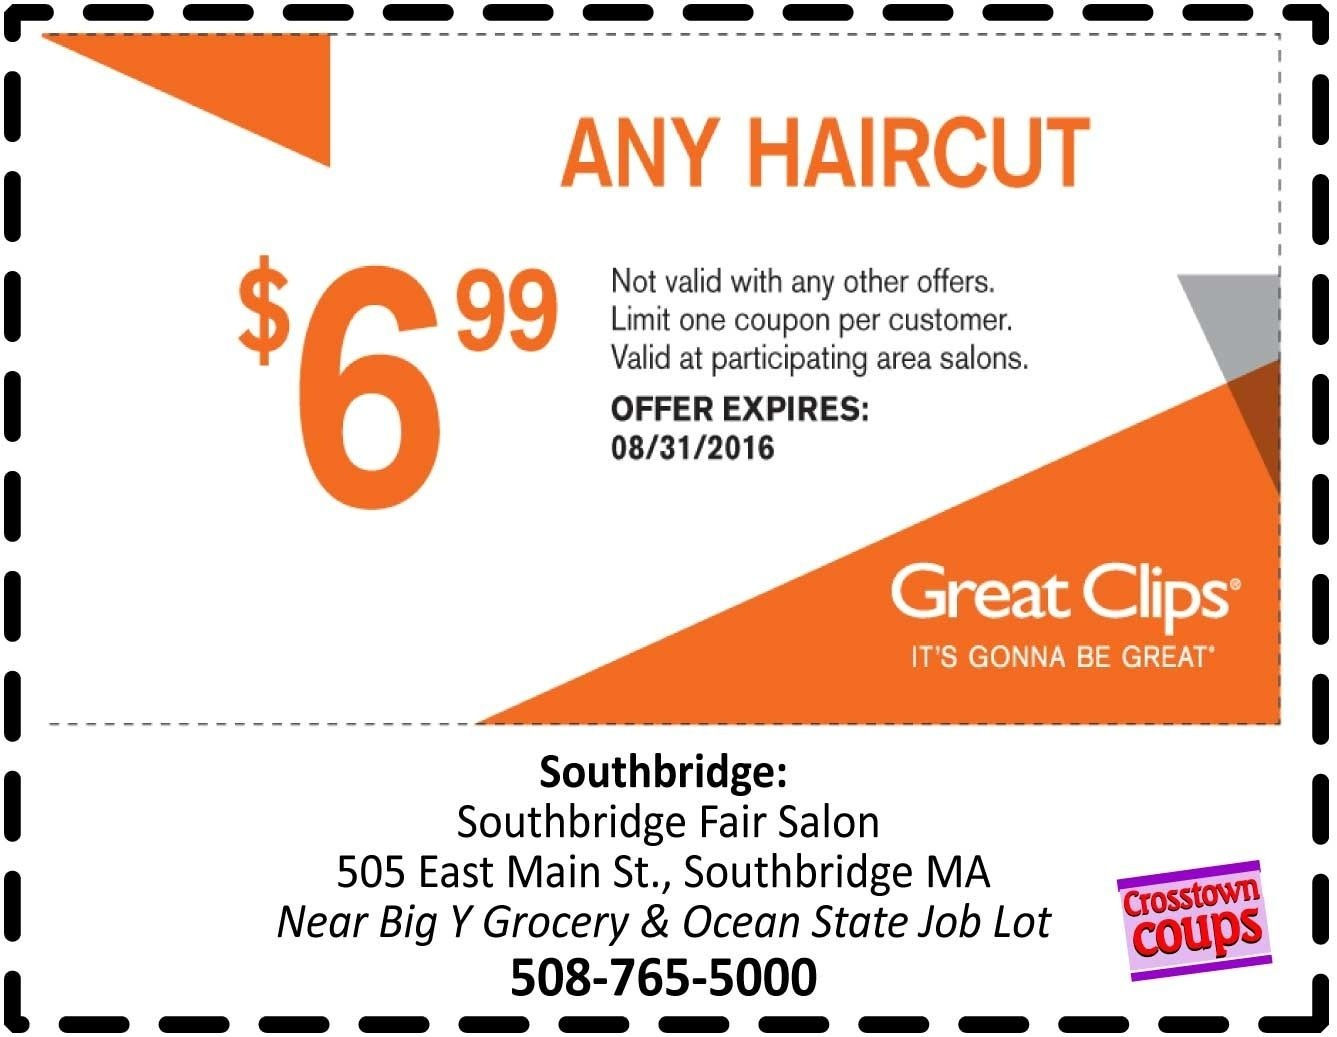 25 Haircut Coupons 2017 | Hairstyles Ideas - Supercuts Free Haircut Printable Coupon